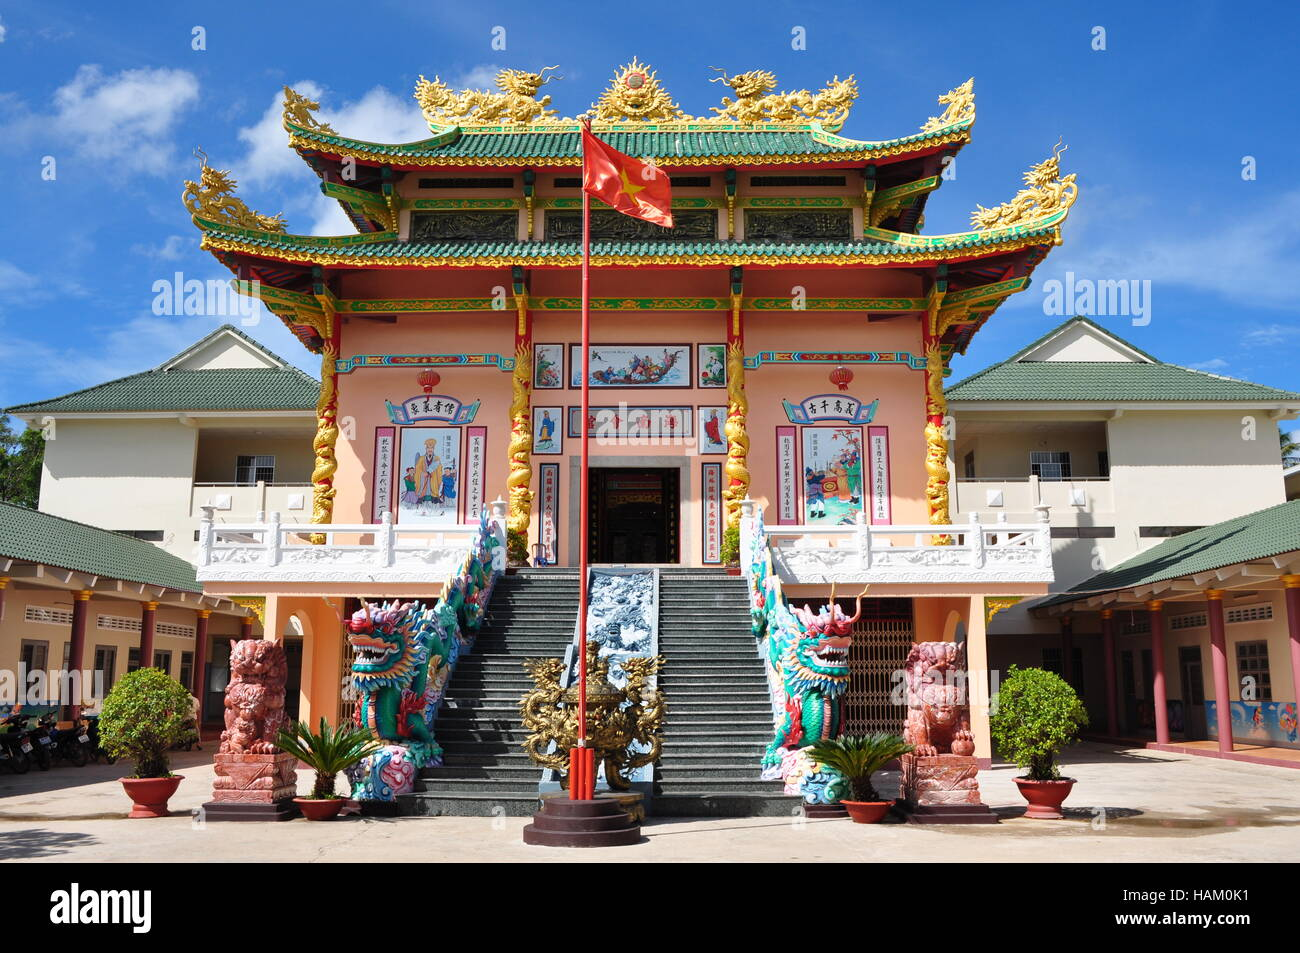 Chinese temple in Duong Dong, Phu Quoc, Vietnam - Stock Image